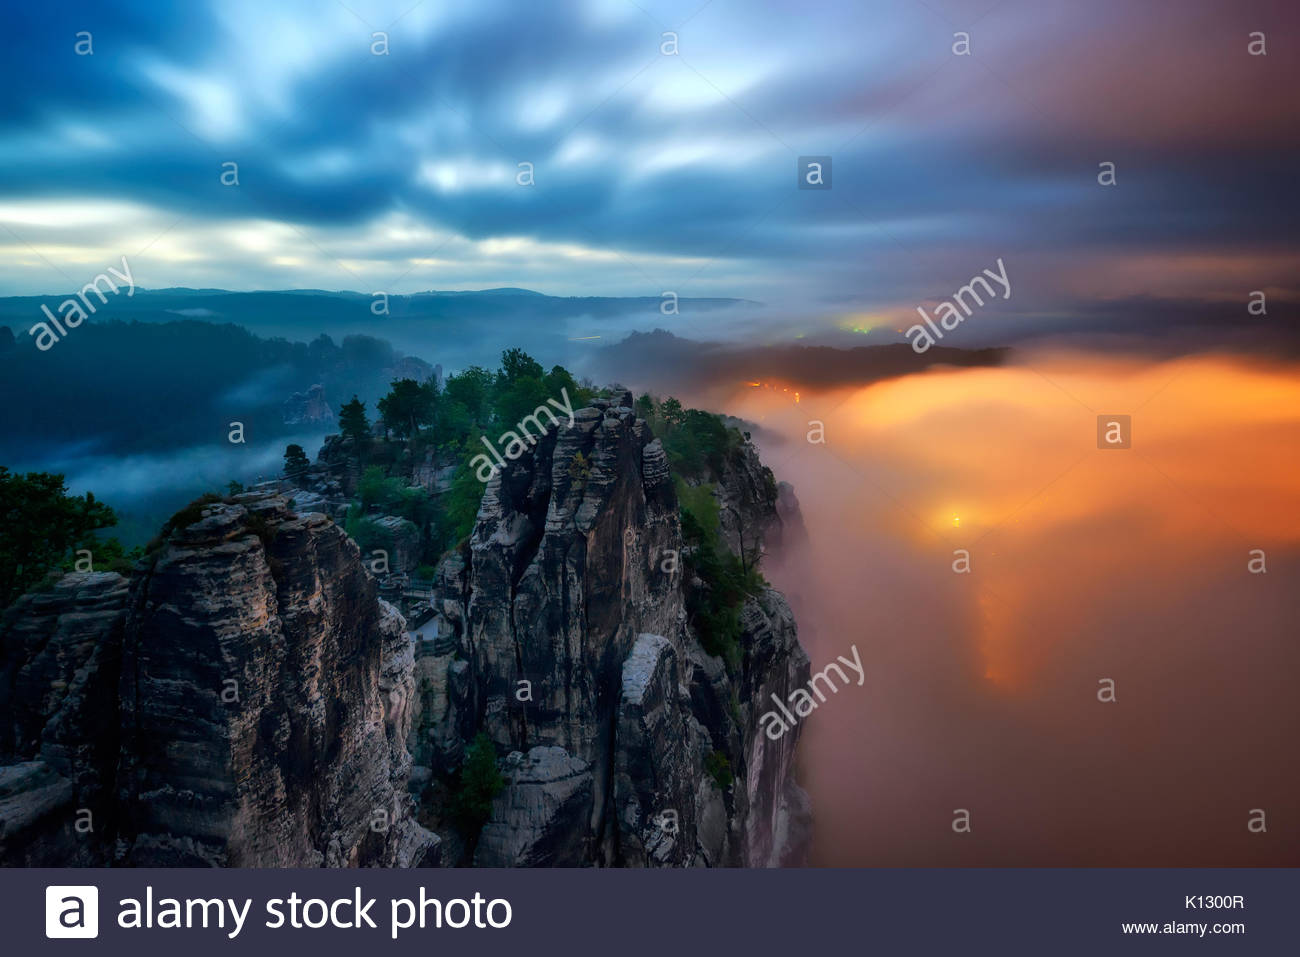 Amazing Bastei bridge night view, Saxon Switzerland, Germany - Stock Image